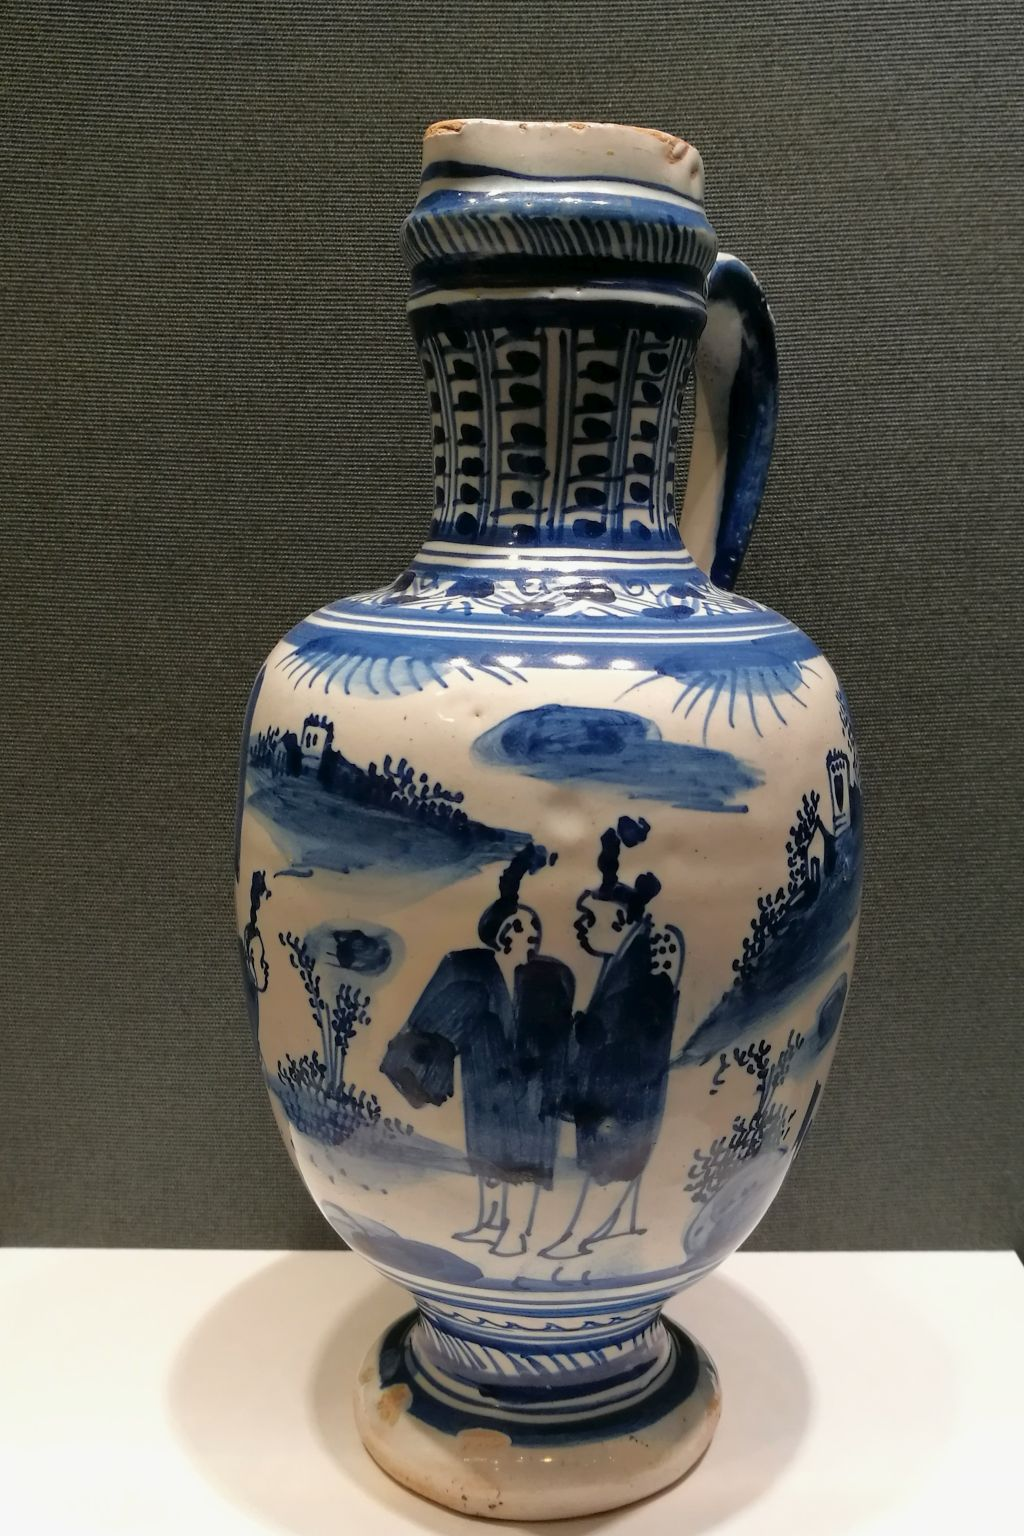 17th century delft blue and white faience chinoiserie jug ca. 1640